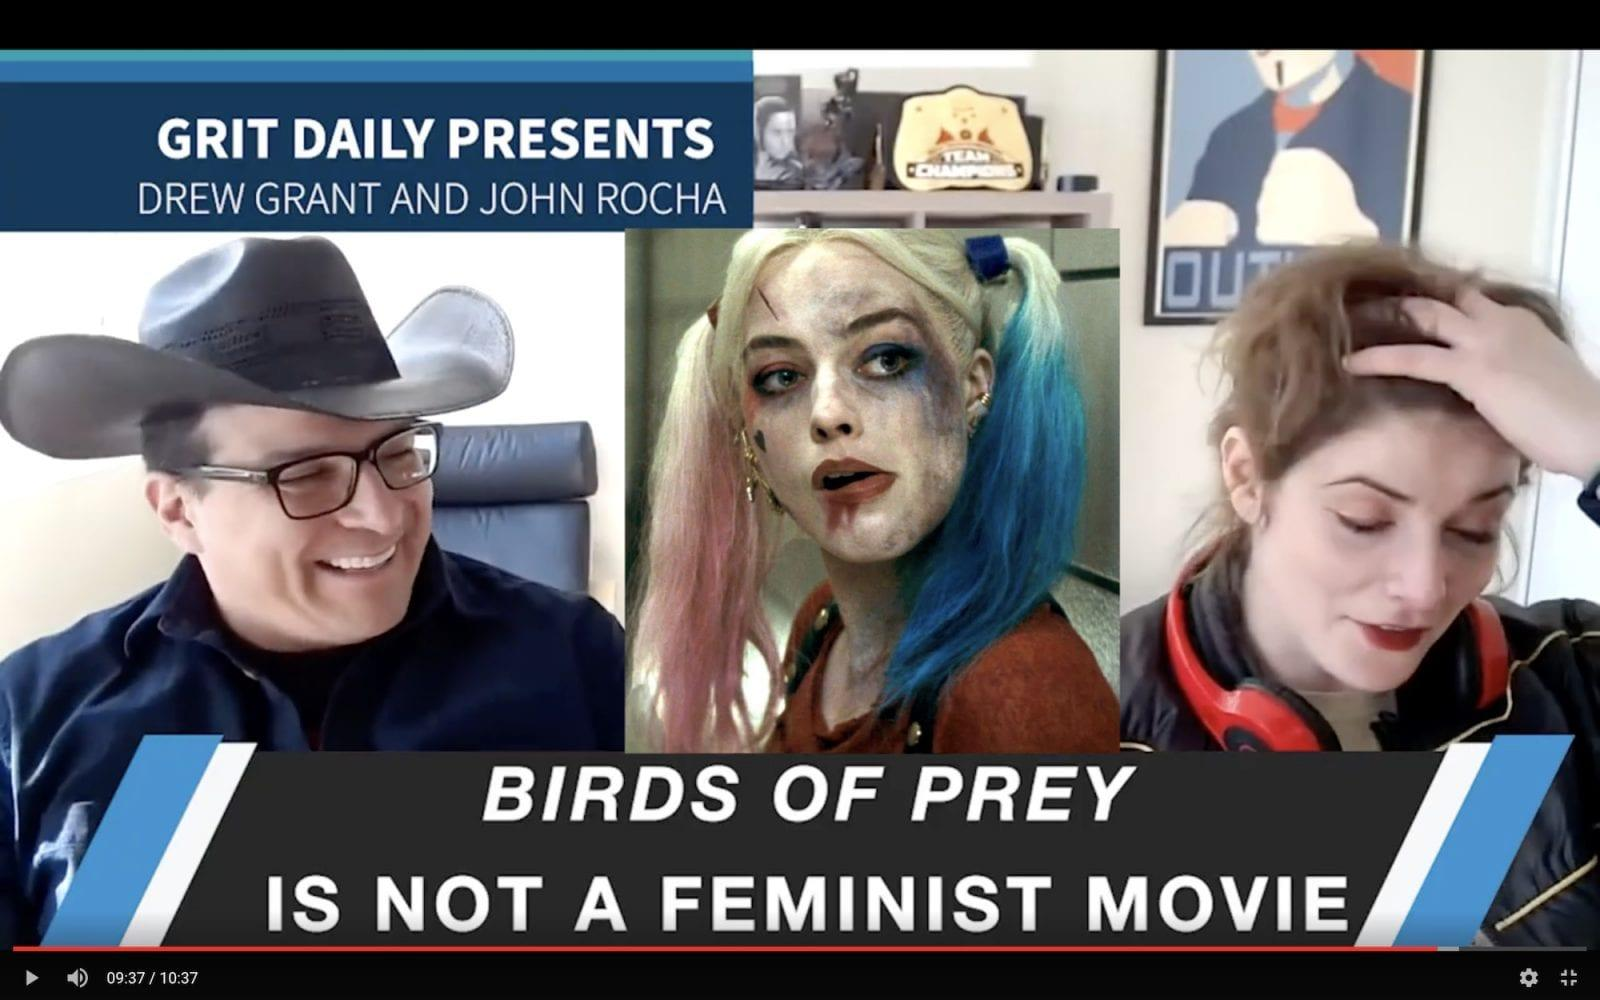 Halloween 2020 Reviews Feminist True Grit Review: 'Birds of Prey' Is Not A Feminist Movie | Grit